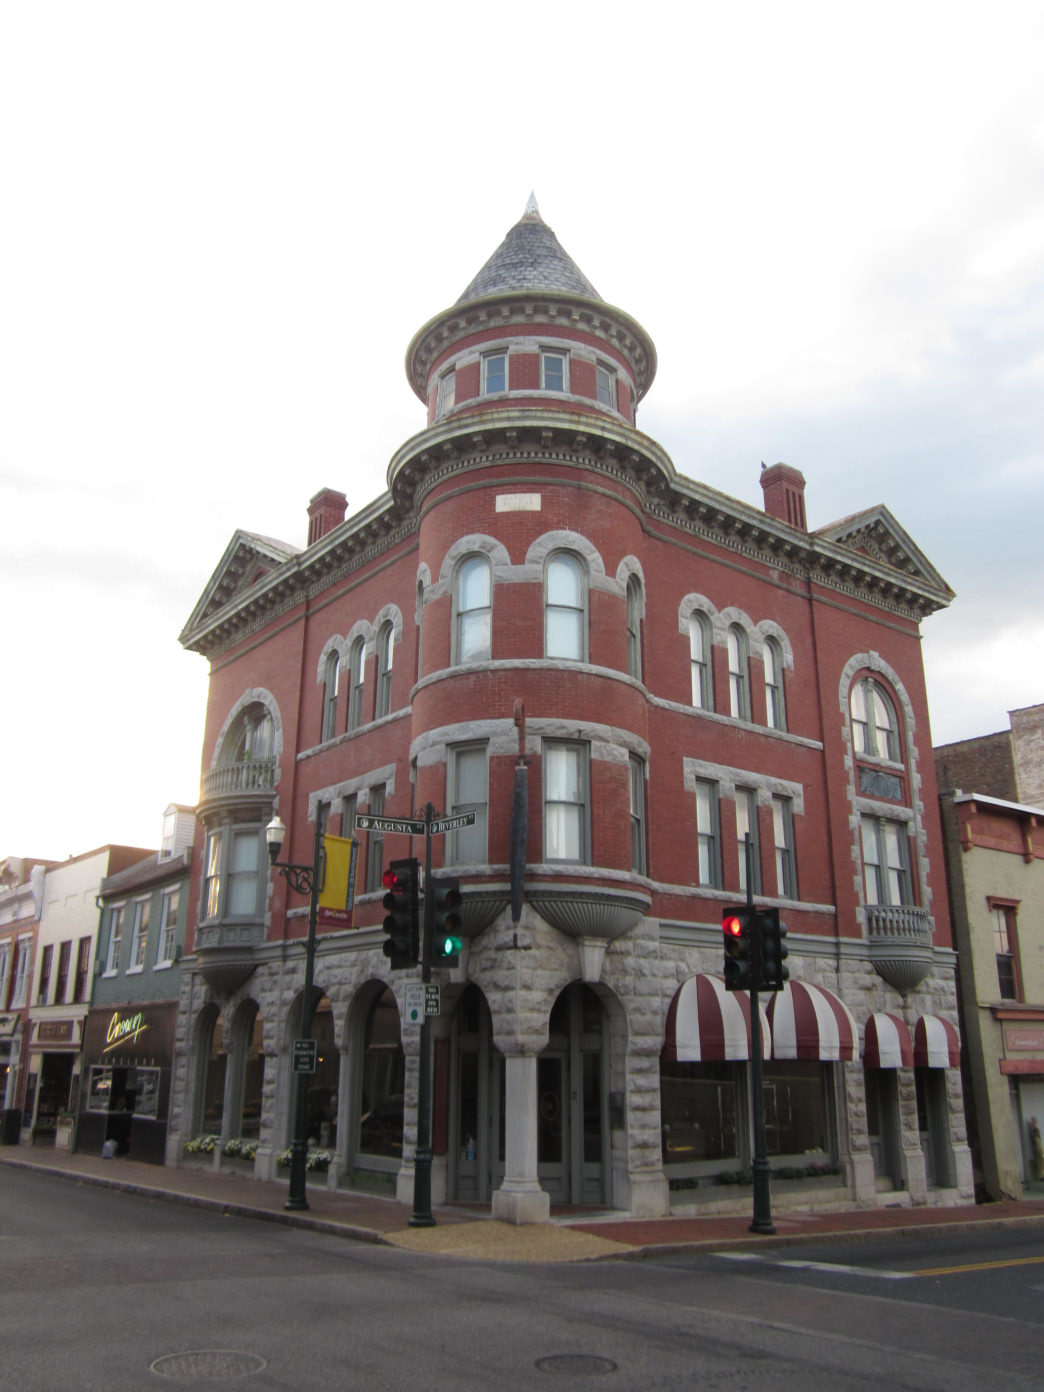 Downtown Staunton is filled with historical architecture, dating back to the 19th century.